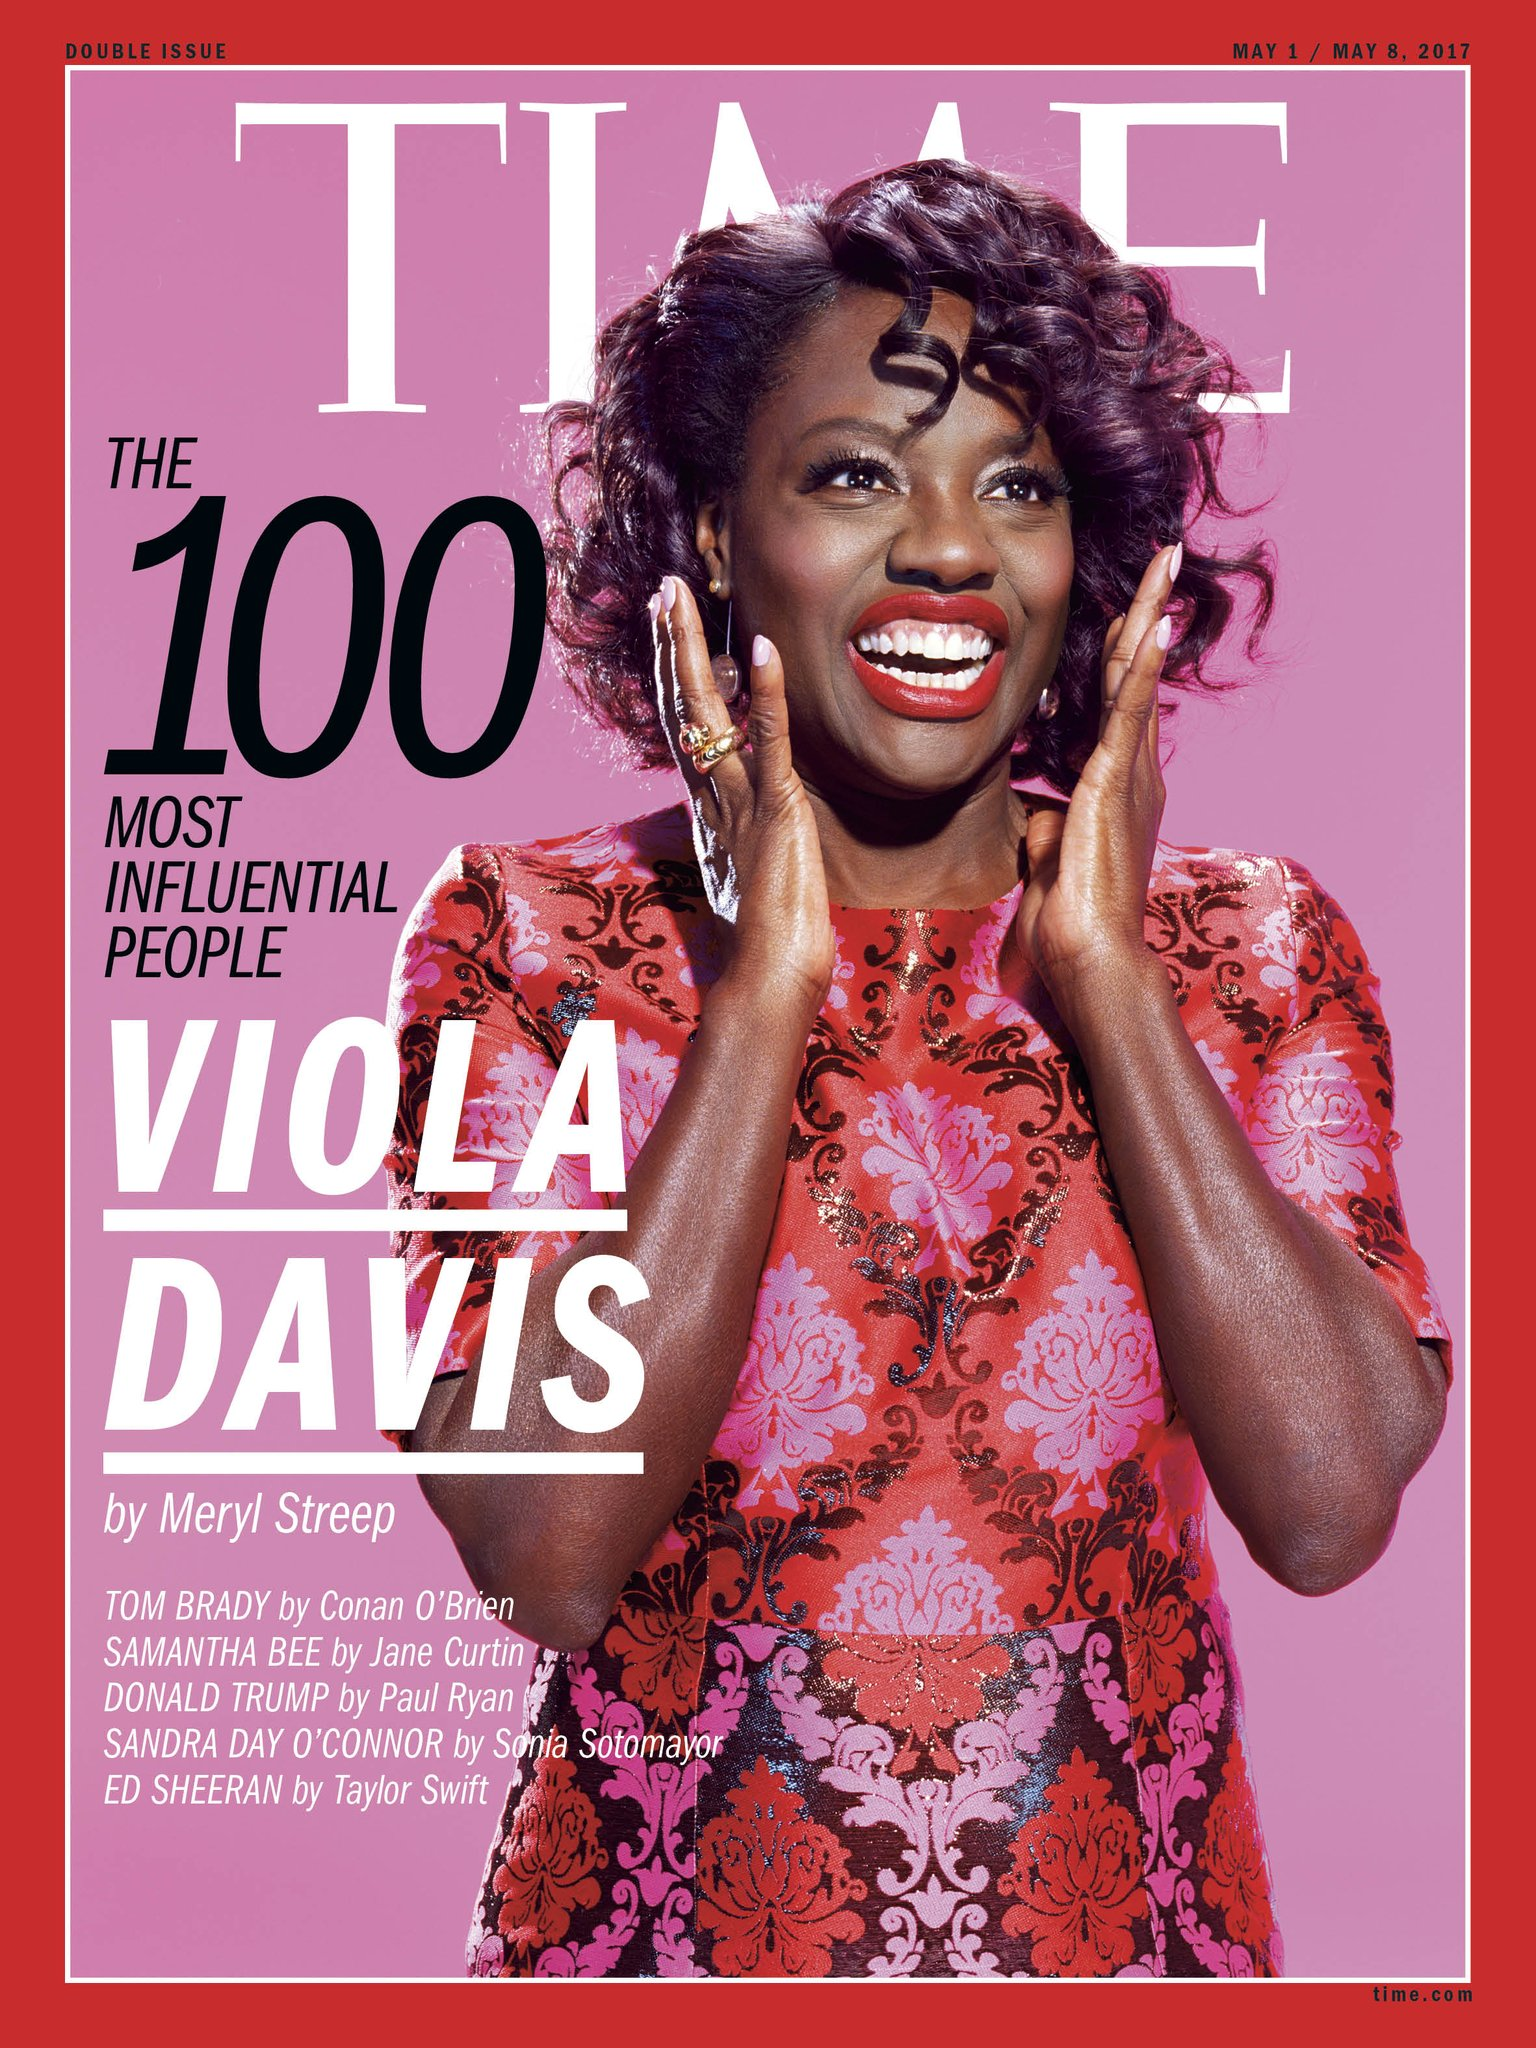 "Meryl Streep on @ViolaDavis: ""Her gifts as an artist are unassailable, undeniable, deep and rich and true"" #TIME100 https://t.co/pSt3KYqNXV https://t.co/m59y5iDRNQ"